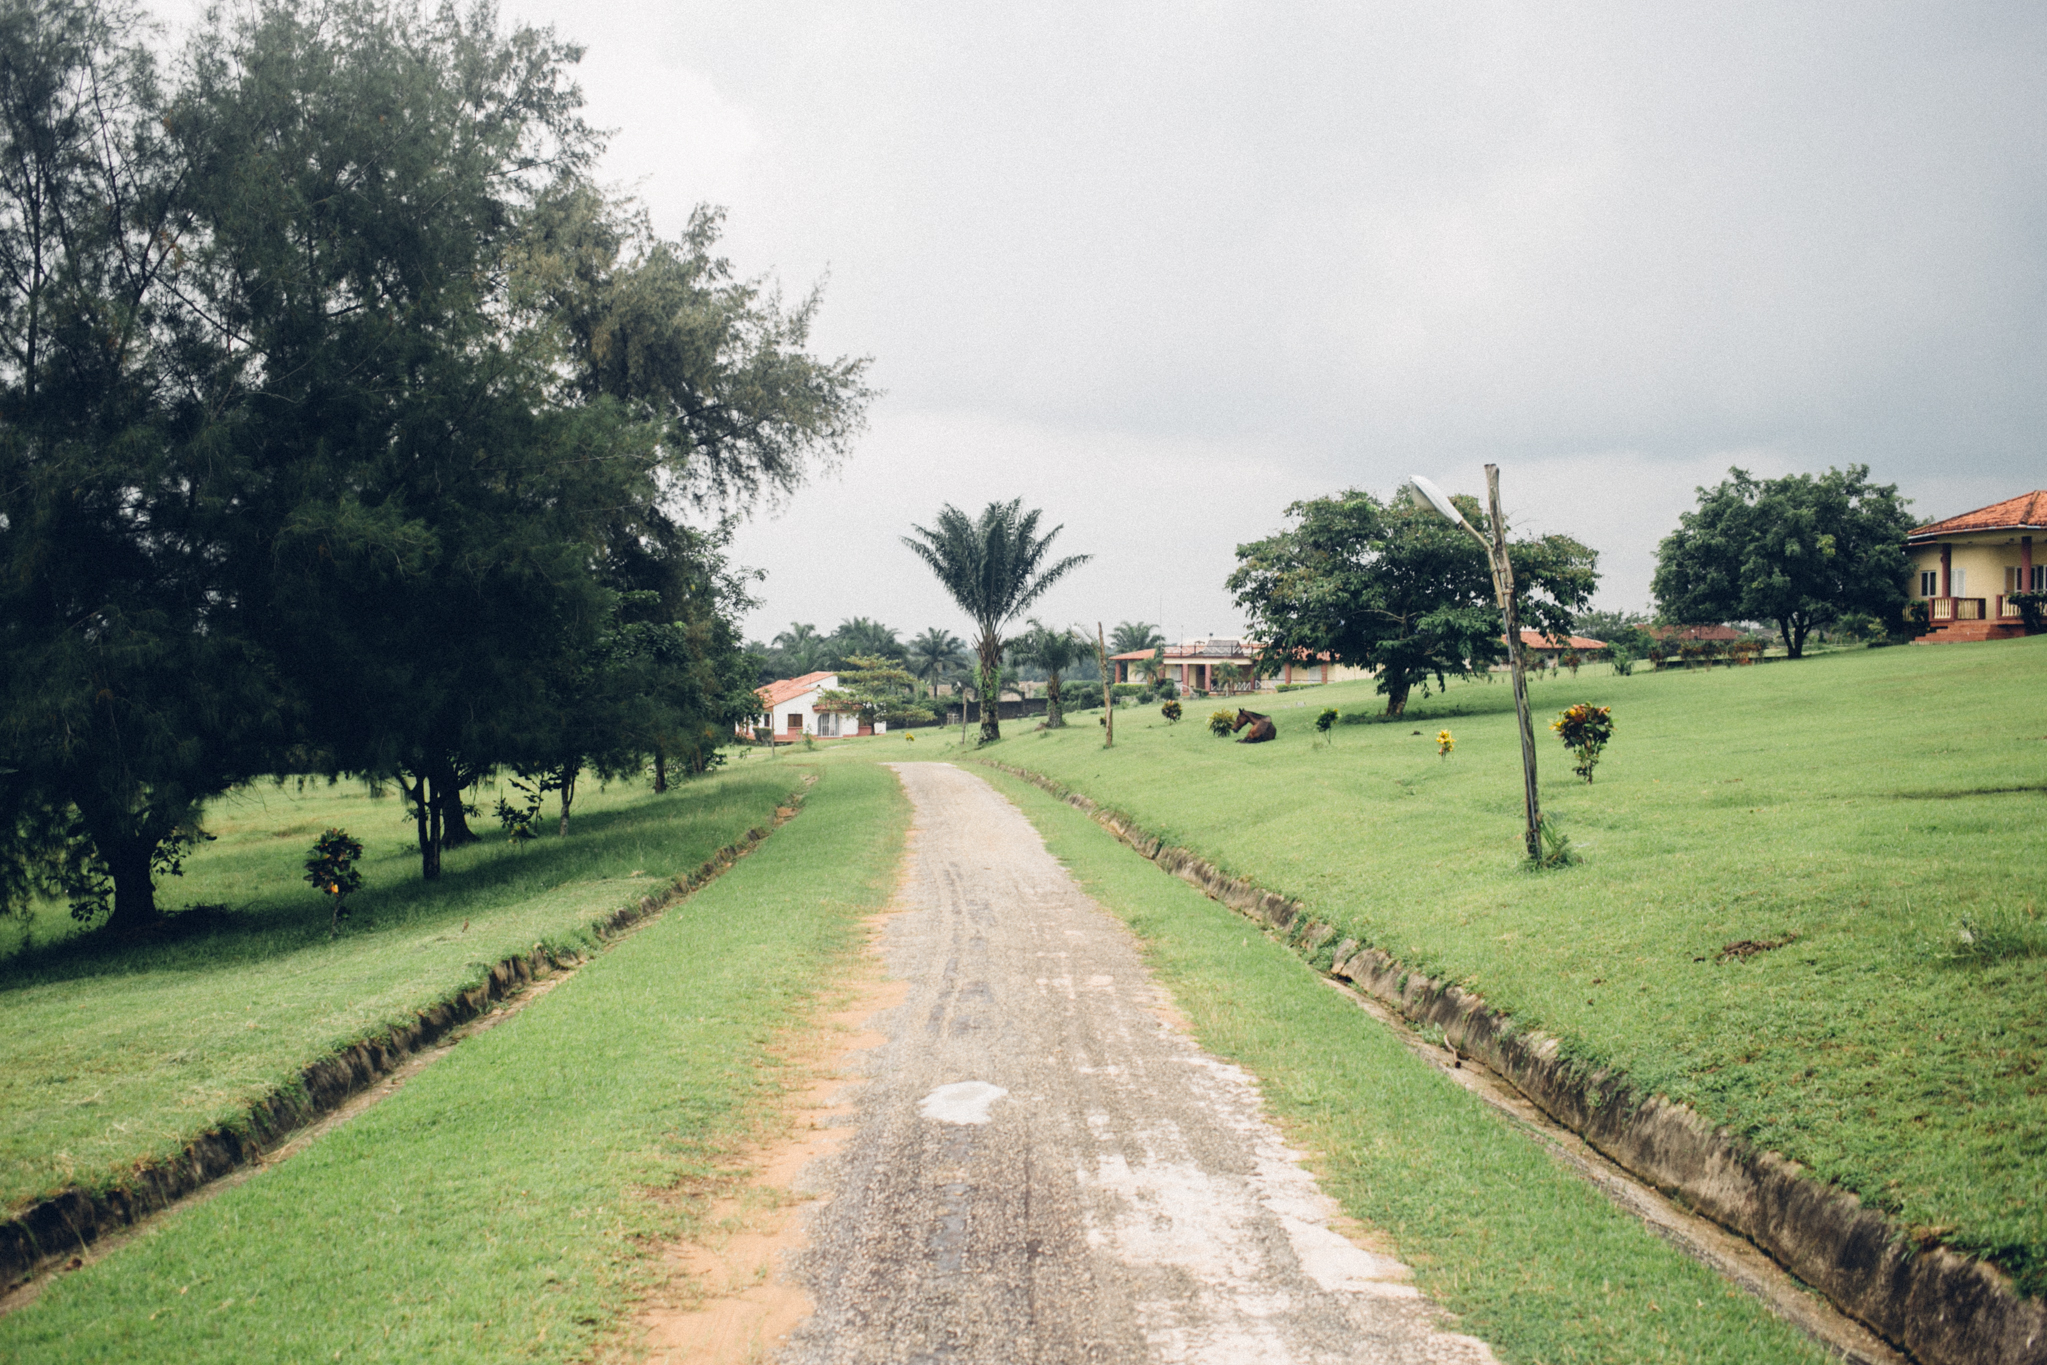 Abraka Turf and Country Club